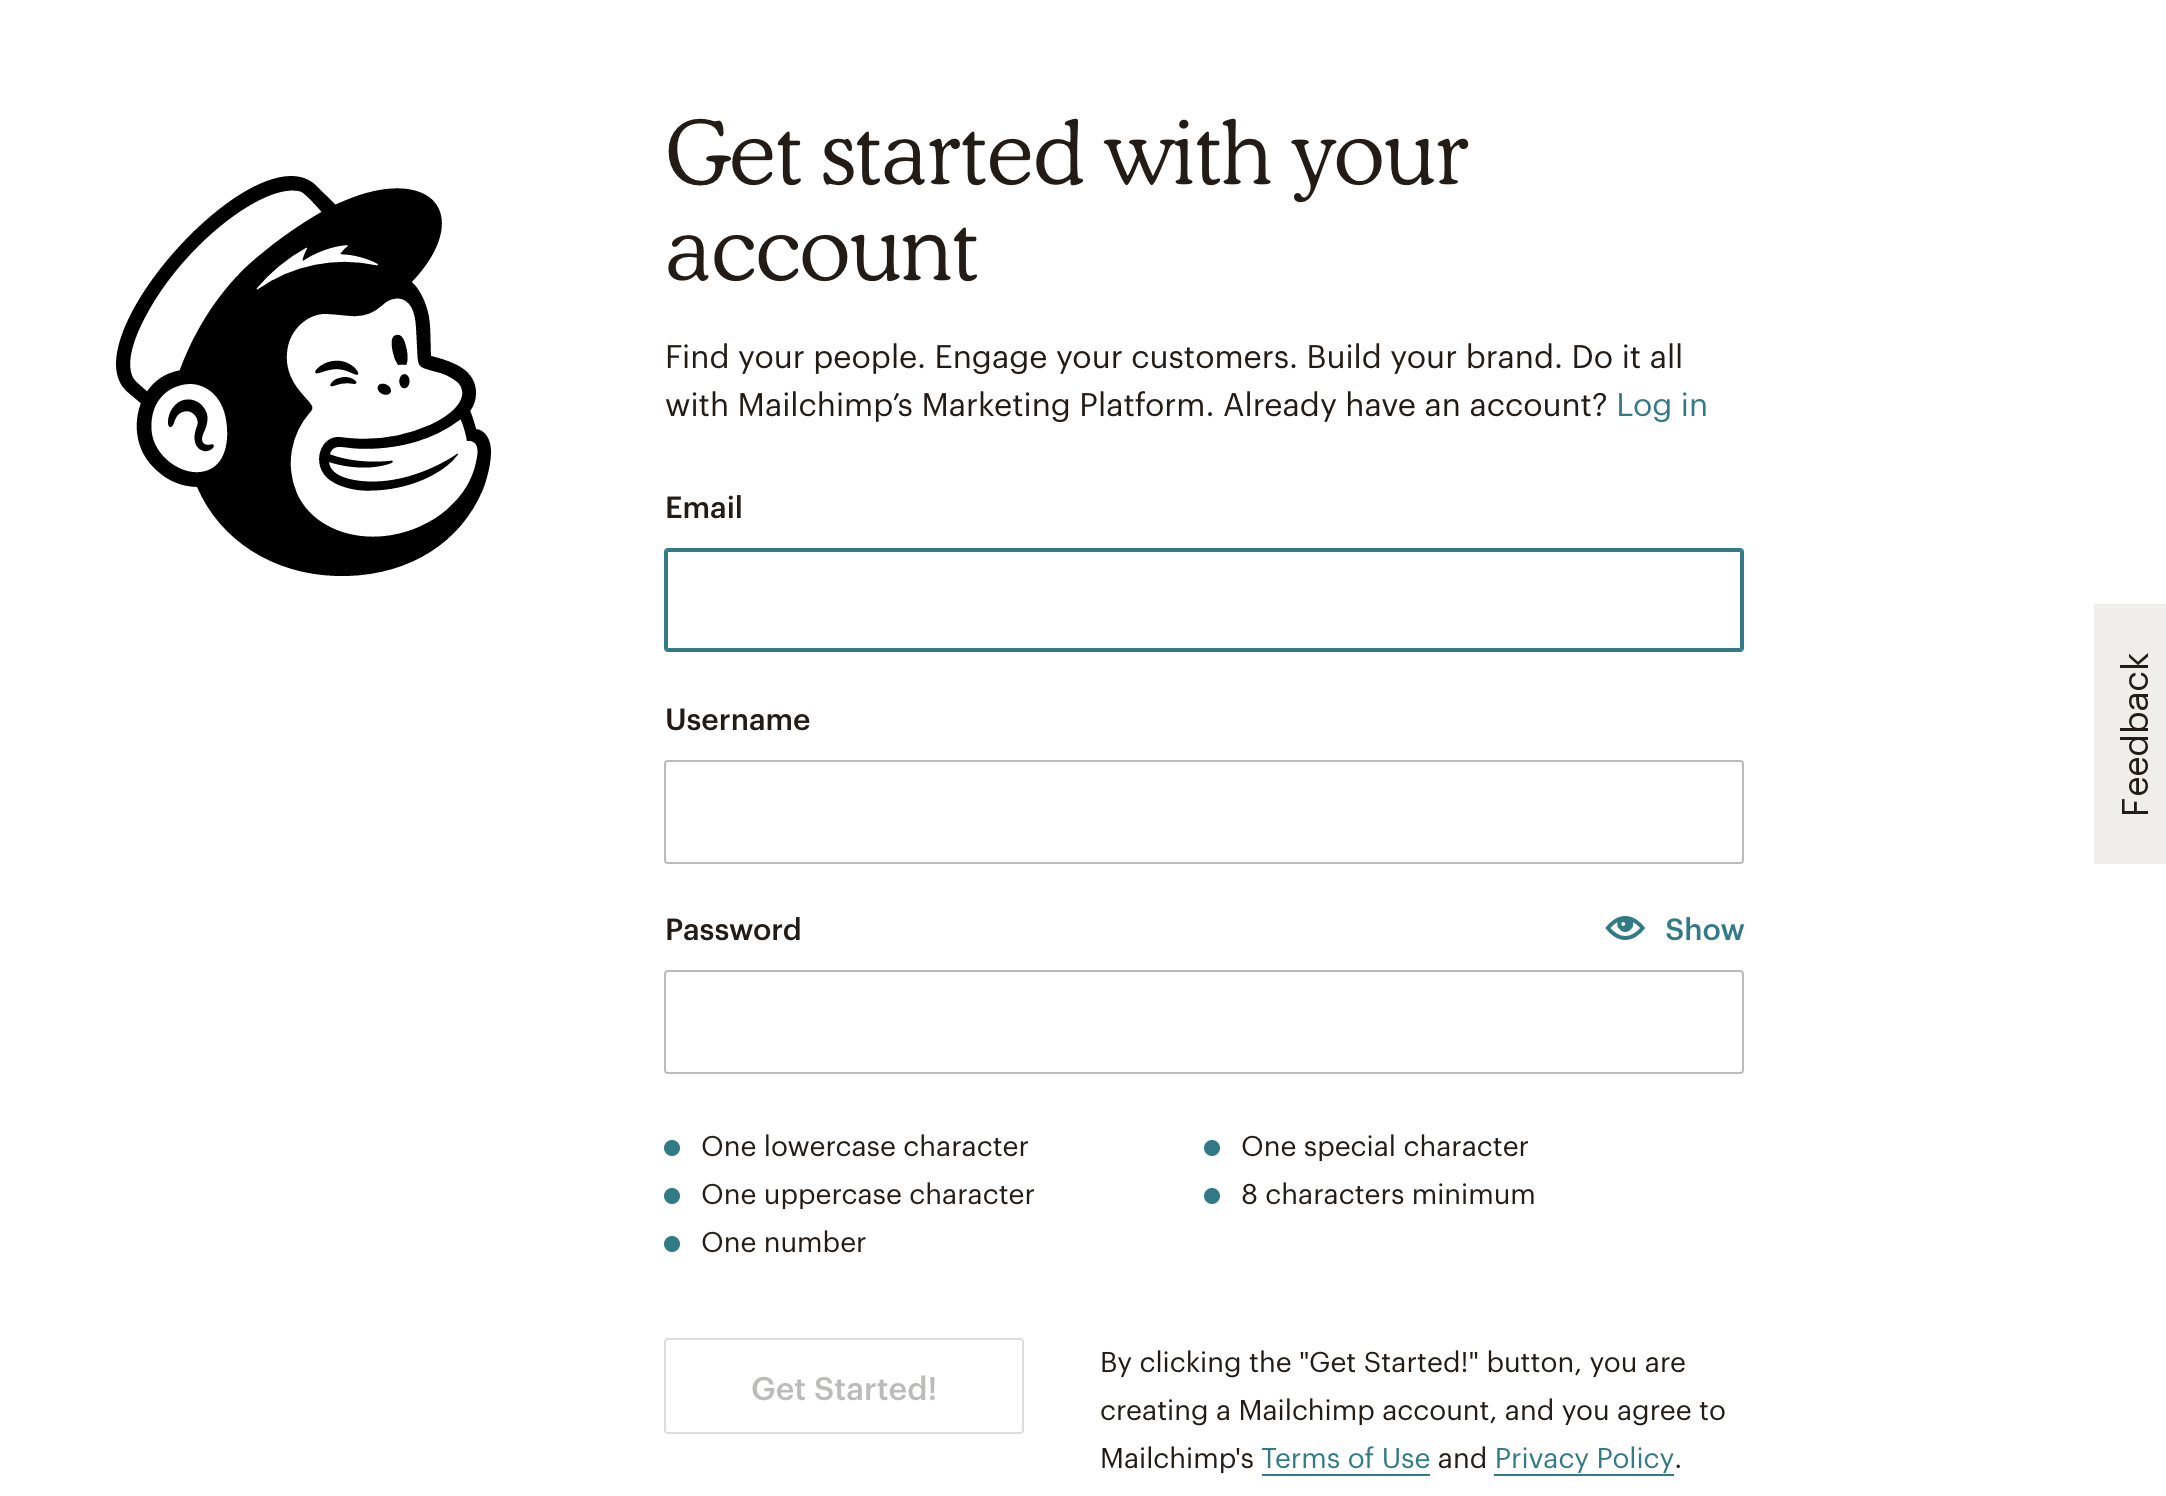 Another microcopy example: Mailchimp's Get Started page